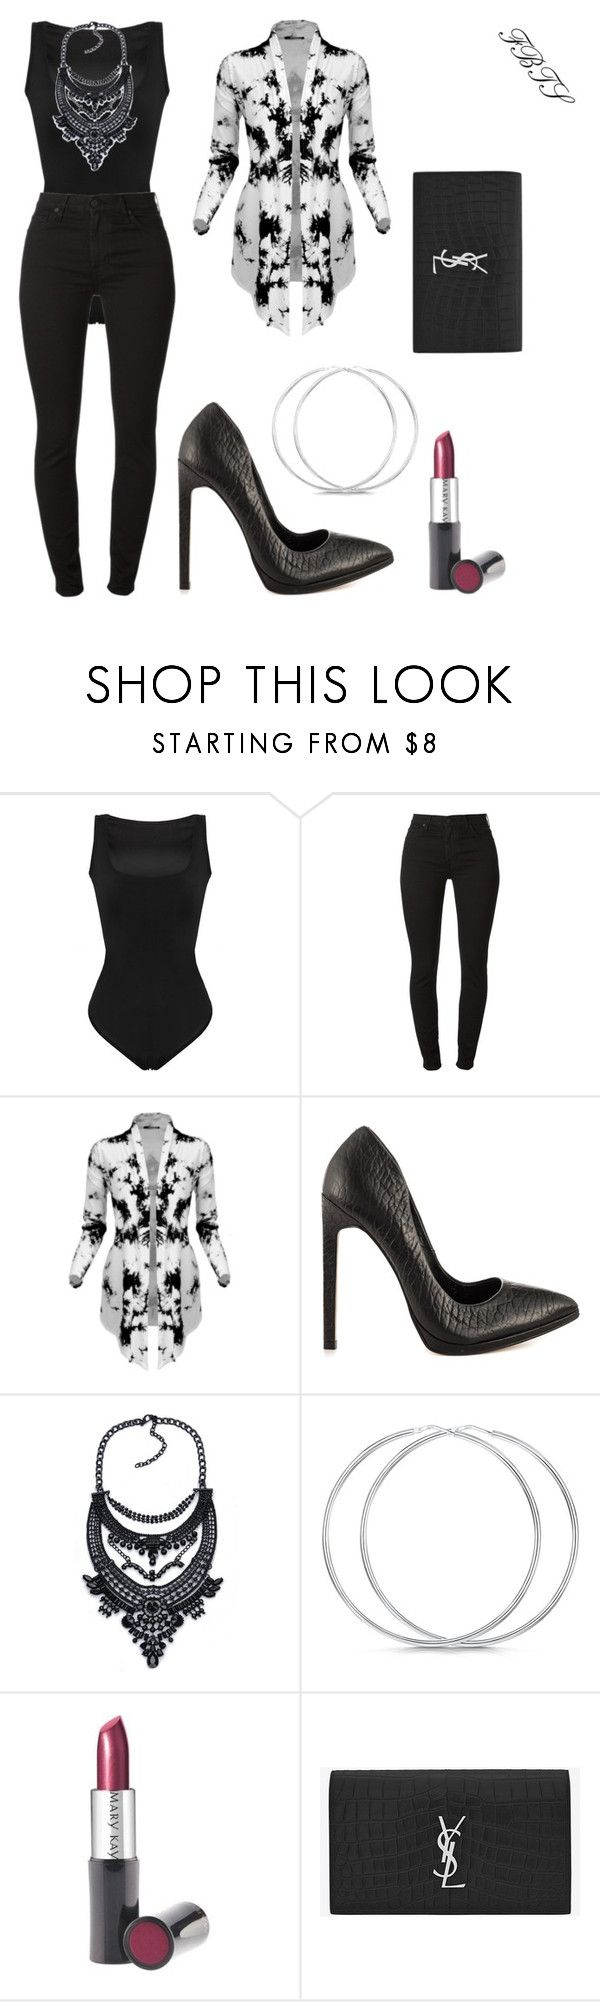 """""""Always Shine"""" by flybeyondtheskies ❤ liked on Polyvore featuring ALDO, Mary Kay and Yves Saint Laurent"""